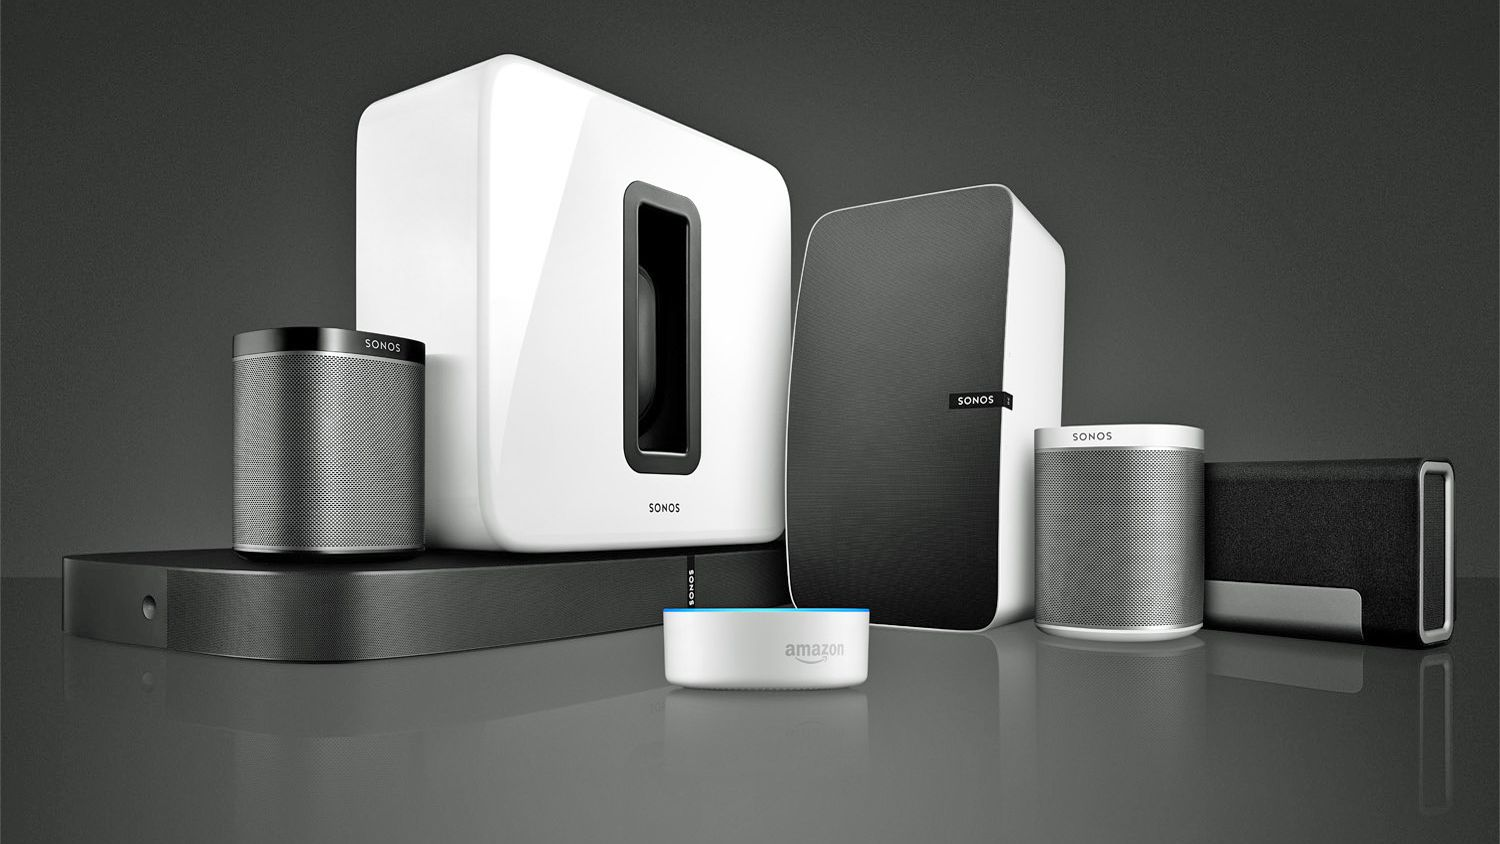 How to Connect Amazon Echo to Your Sonos Speakers